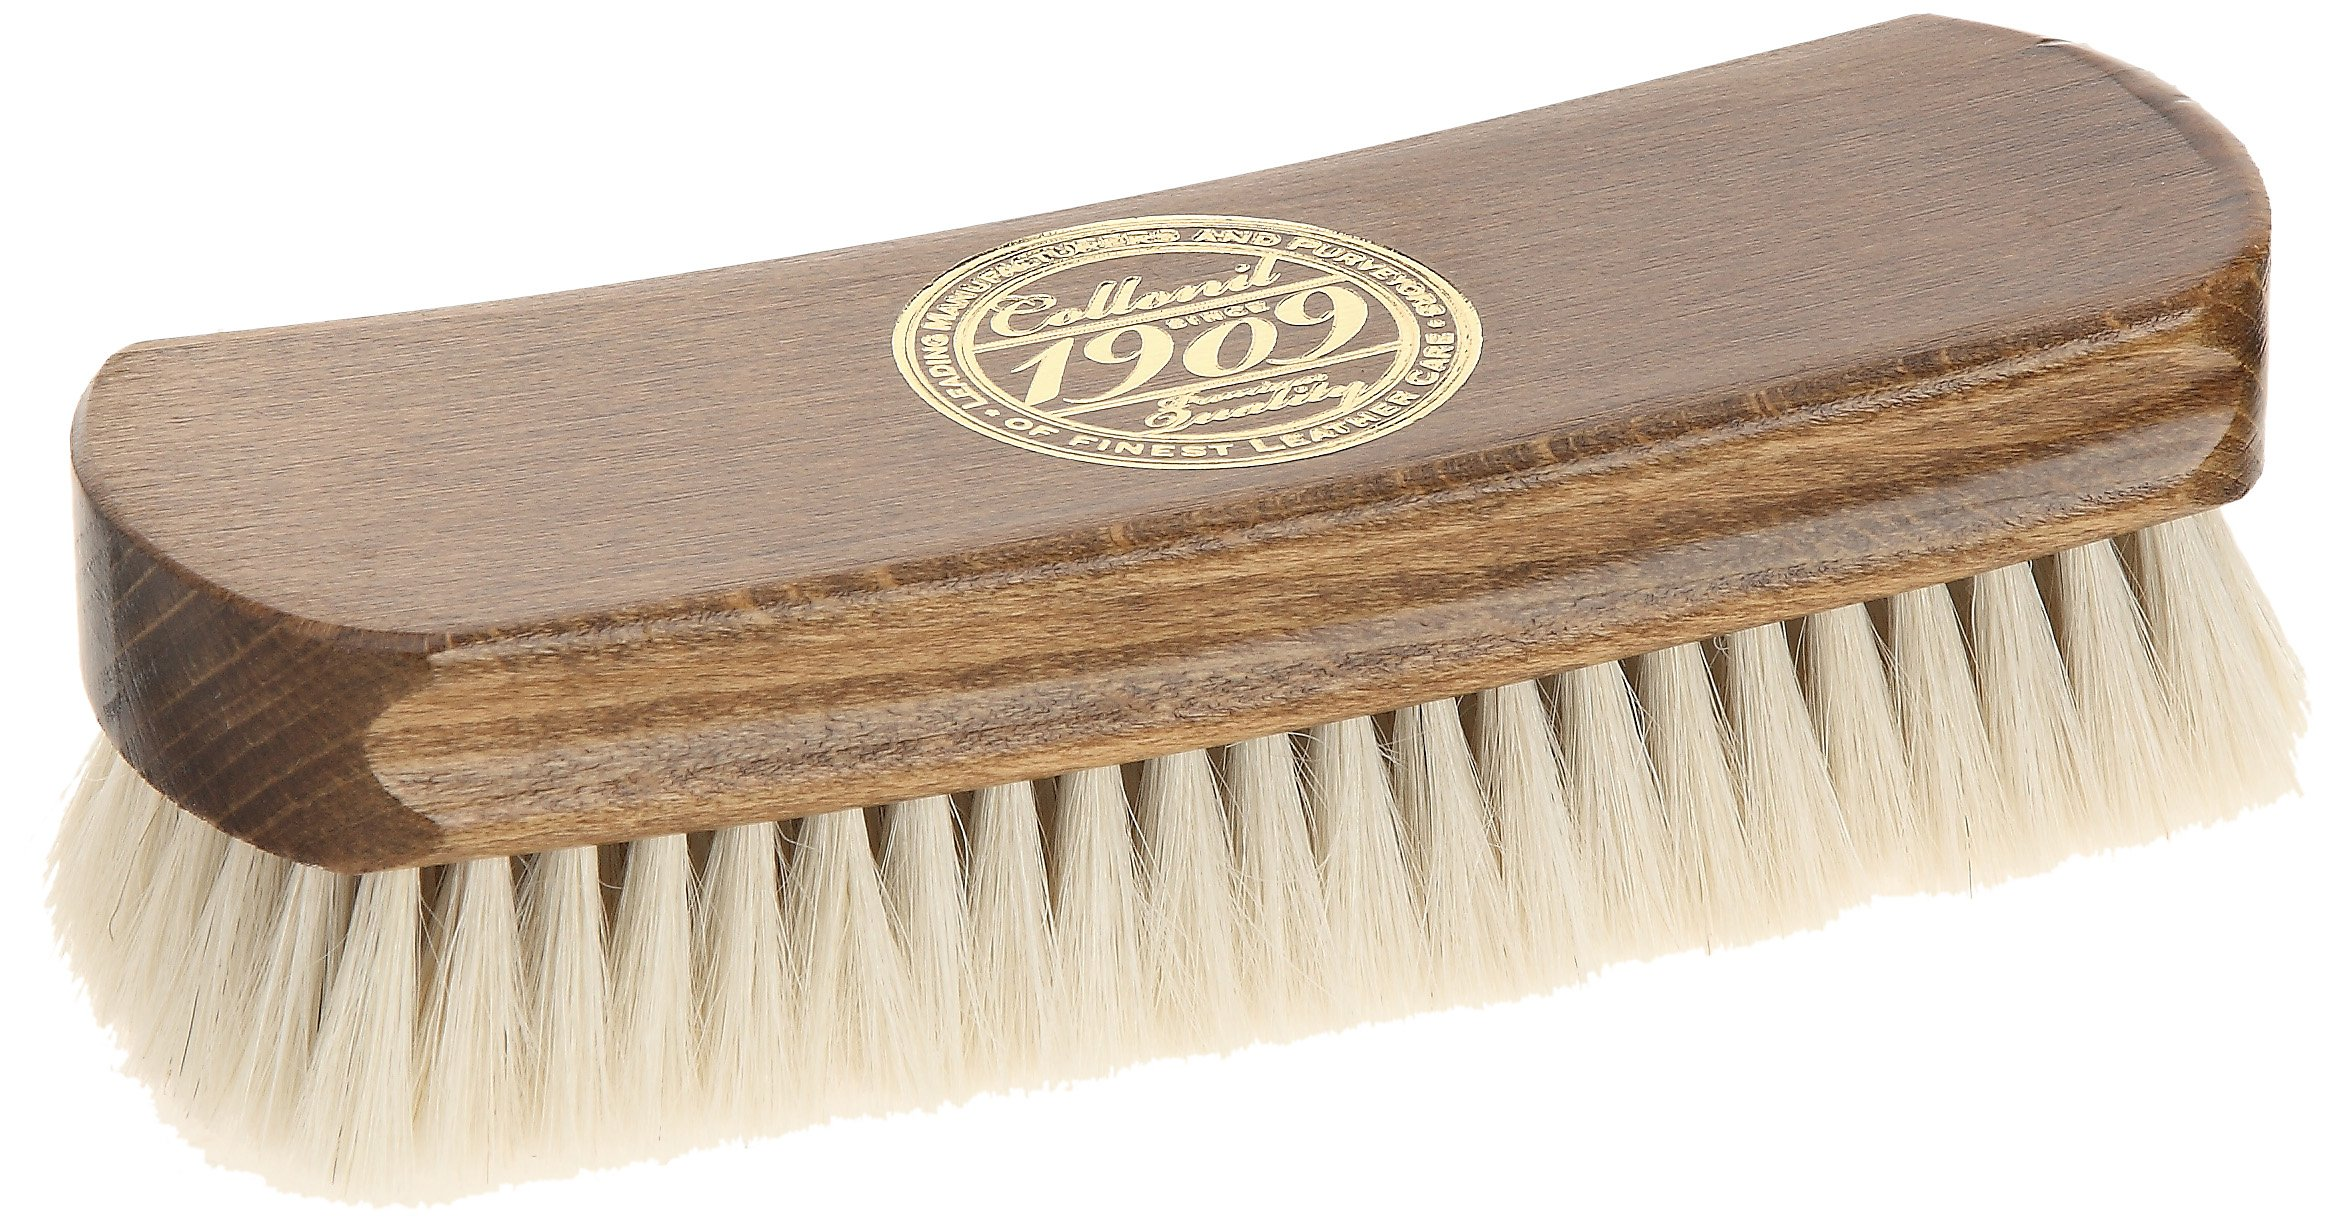 Collonil Goat Hair Brush 1909 Fine Polishing Brush